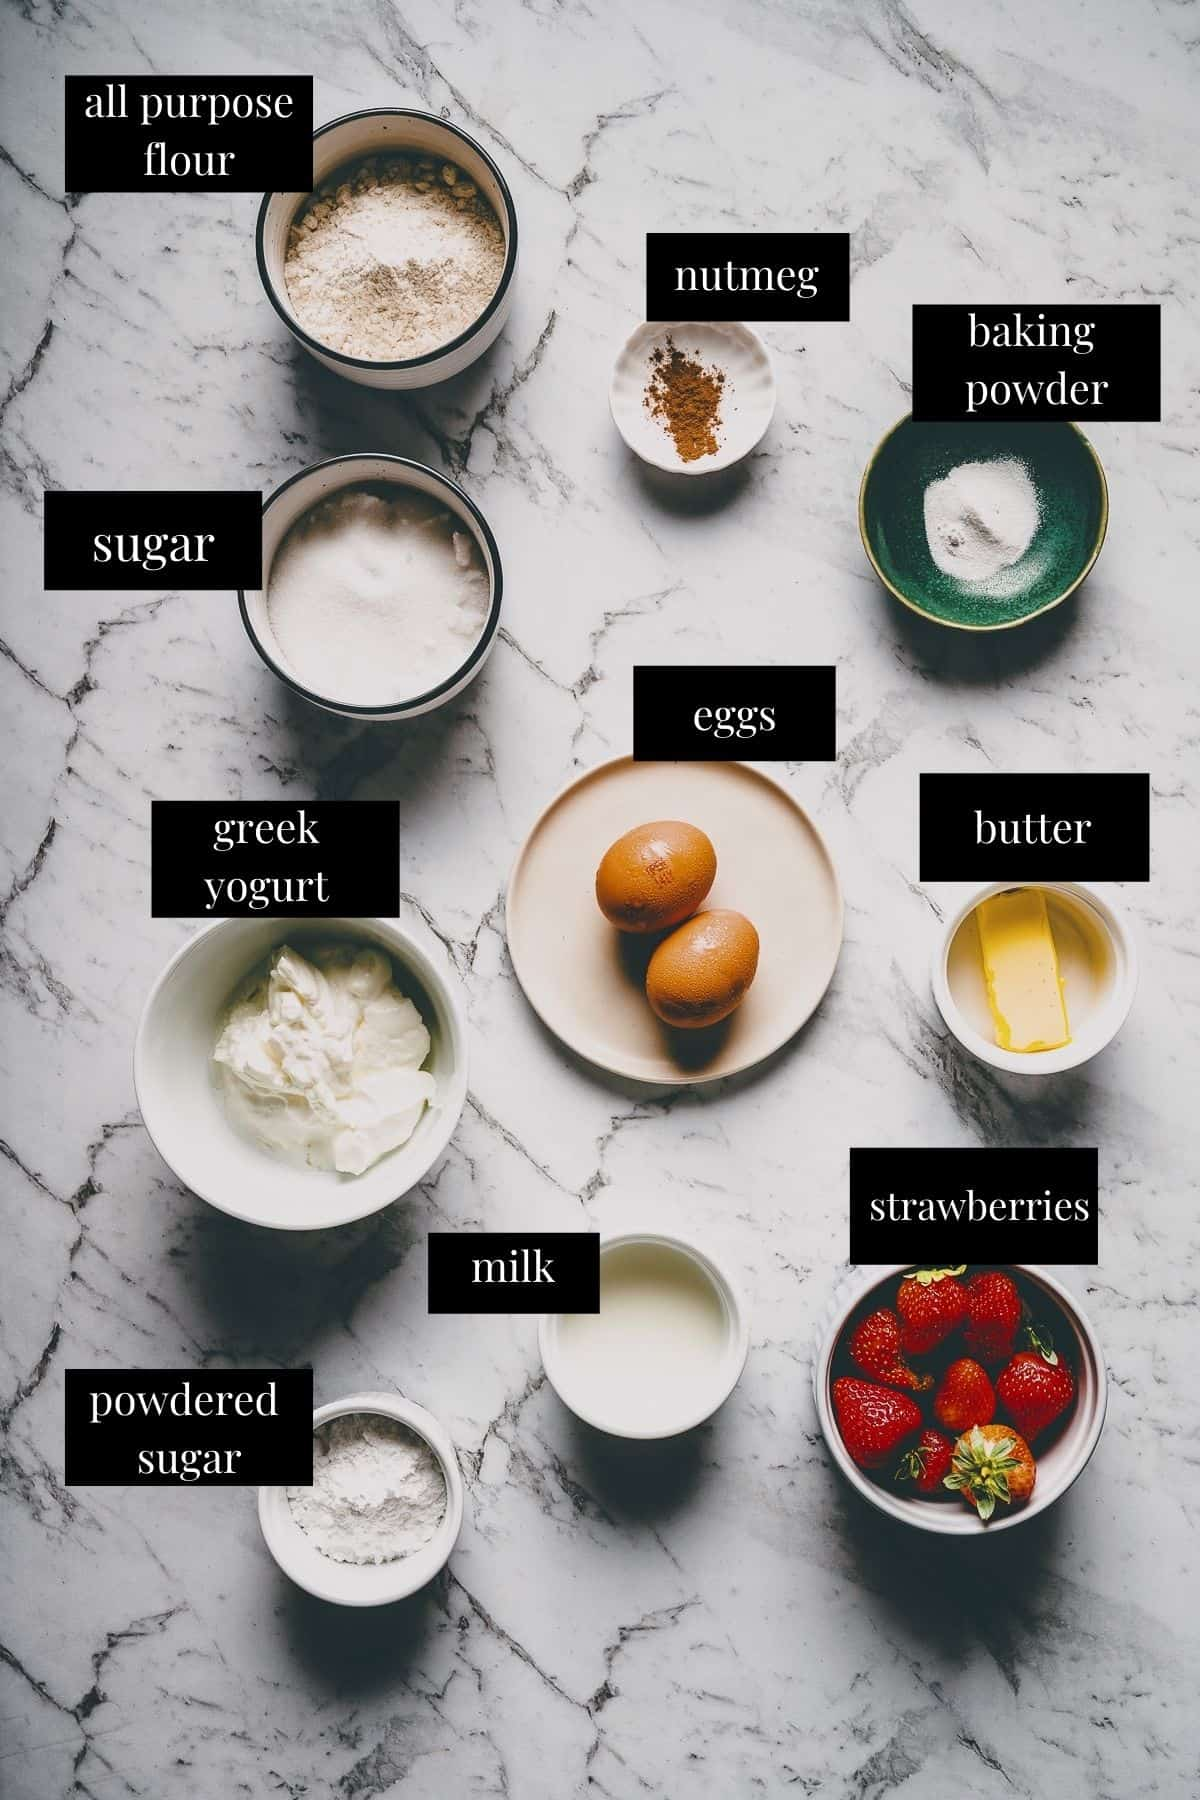 ingredients laid out on a table to make doughnuts